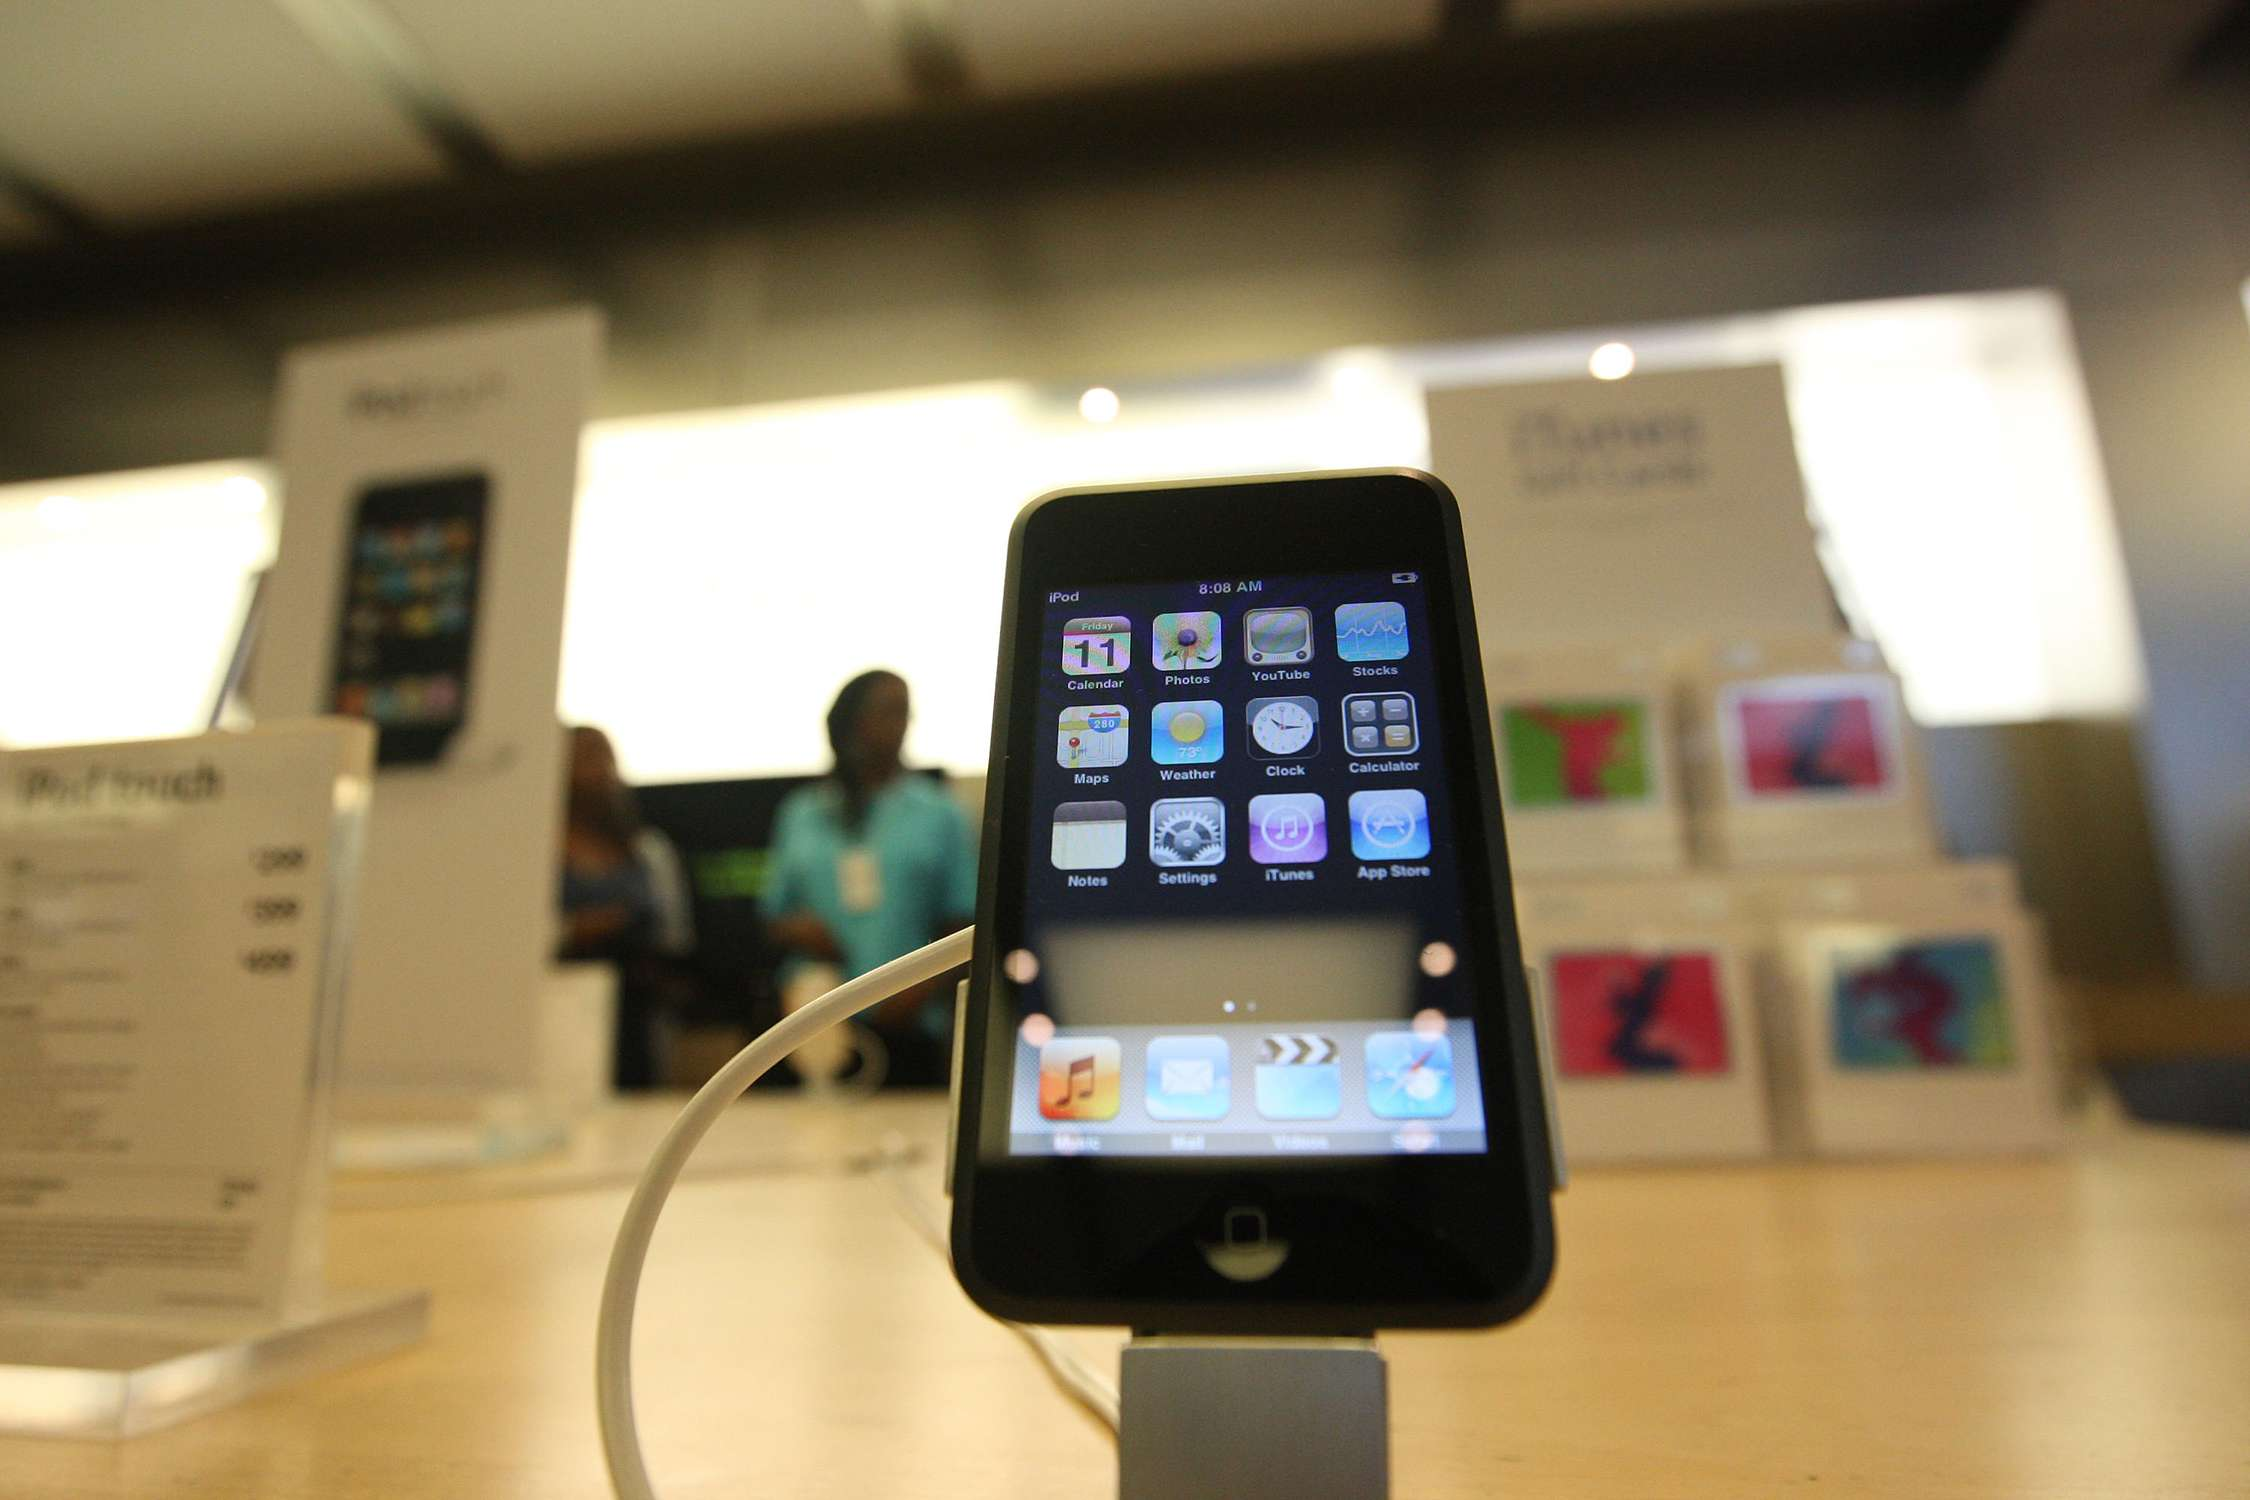 iPhone 3G in an Apple Store